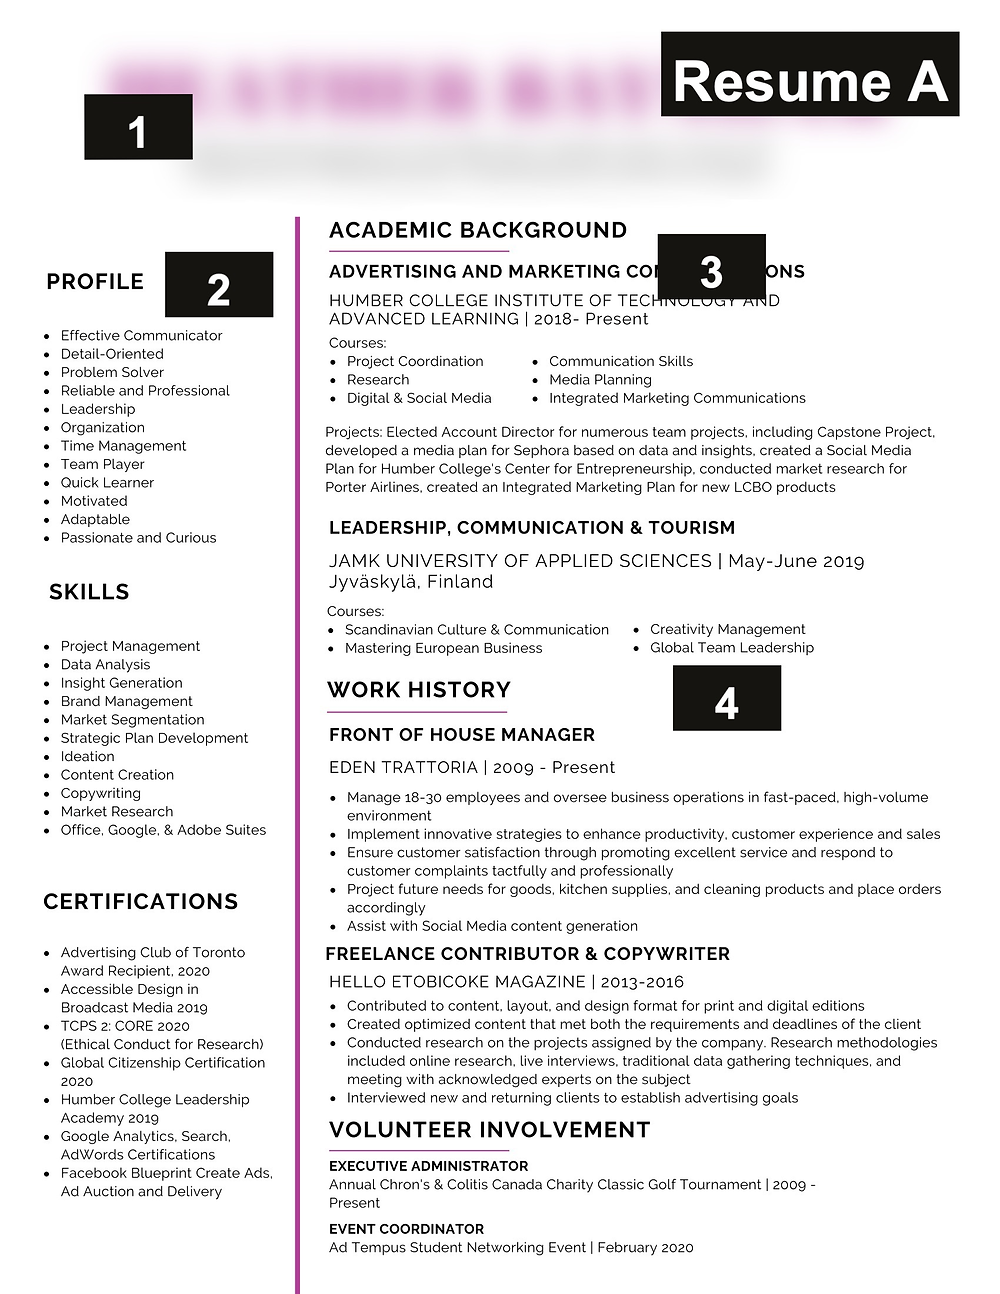 A resume that didn't upload correctly into ATS system